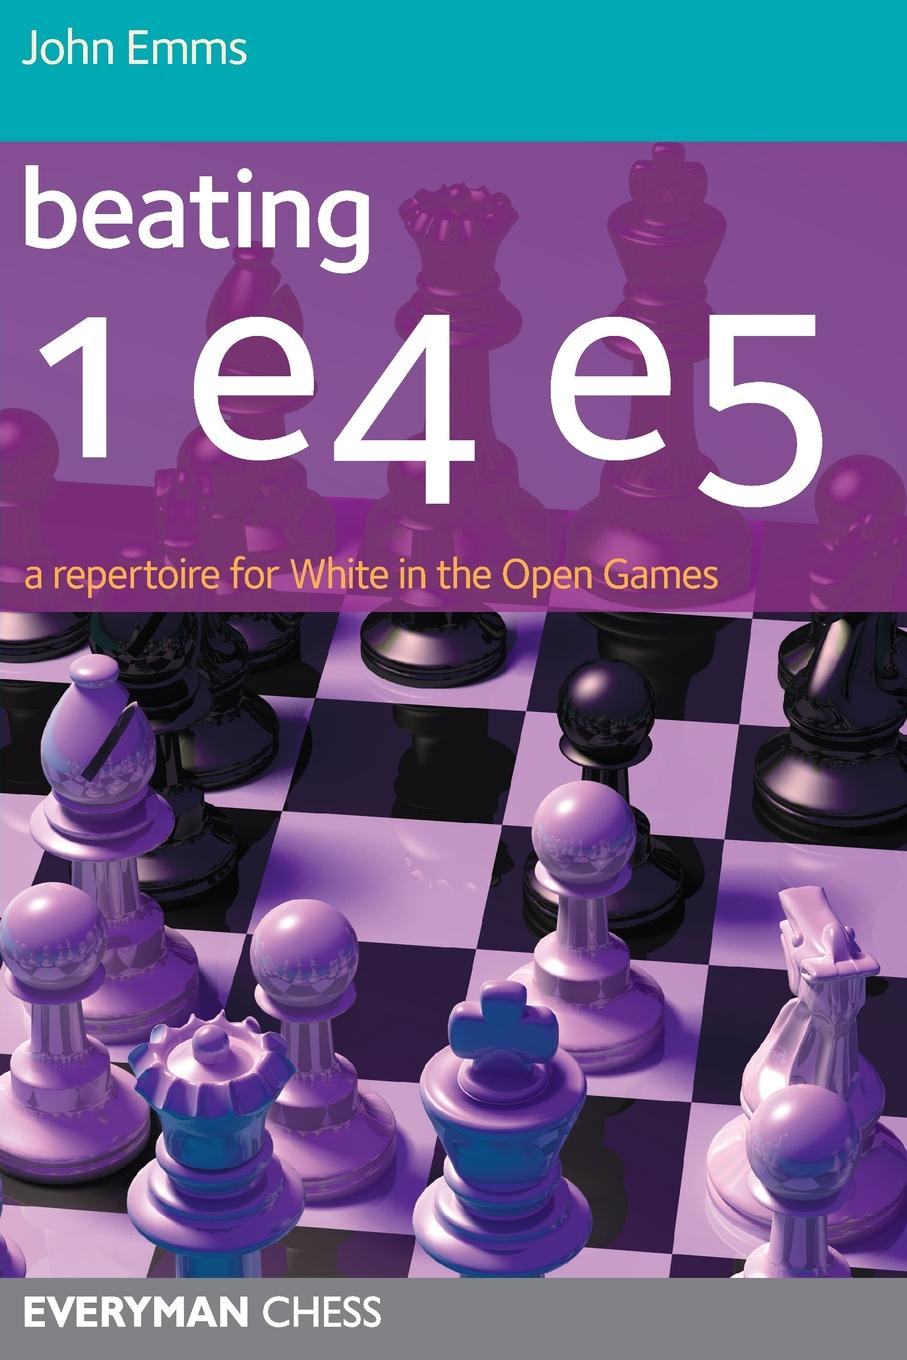 John Emms Beating 1e4 e5. A repertoire for White in the Open Games Zoom Beating 1e4 e5: A repertoire for White in the Open Games john adair john adair s 100 greatest ideas for being a brilliant manager